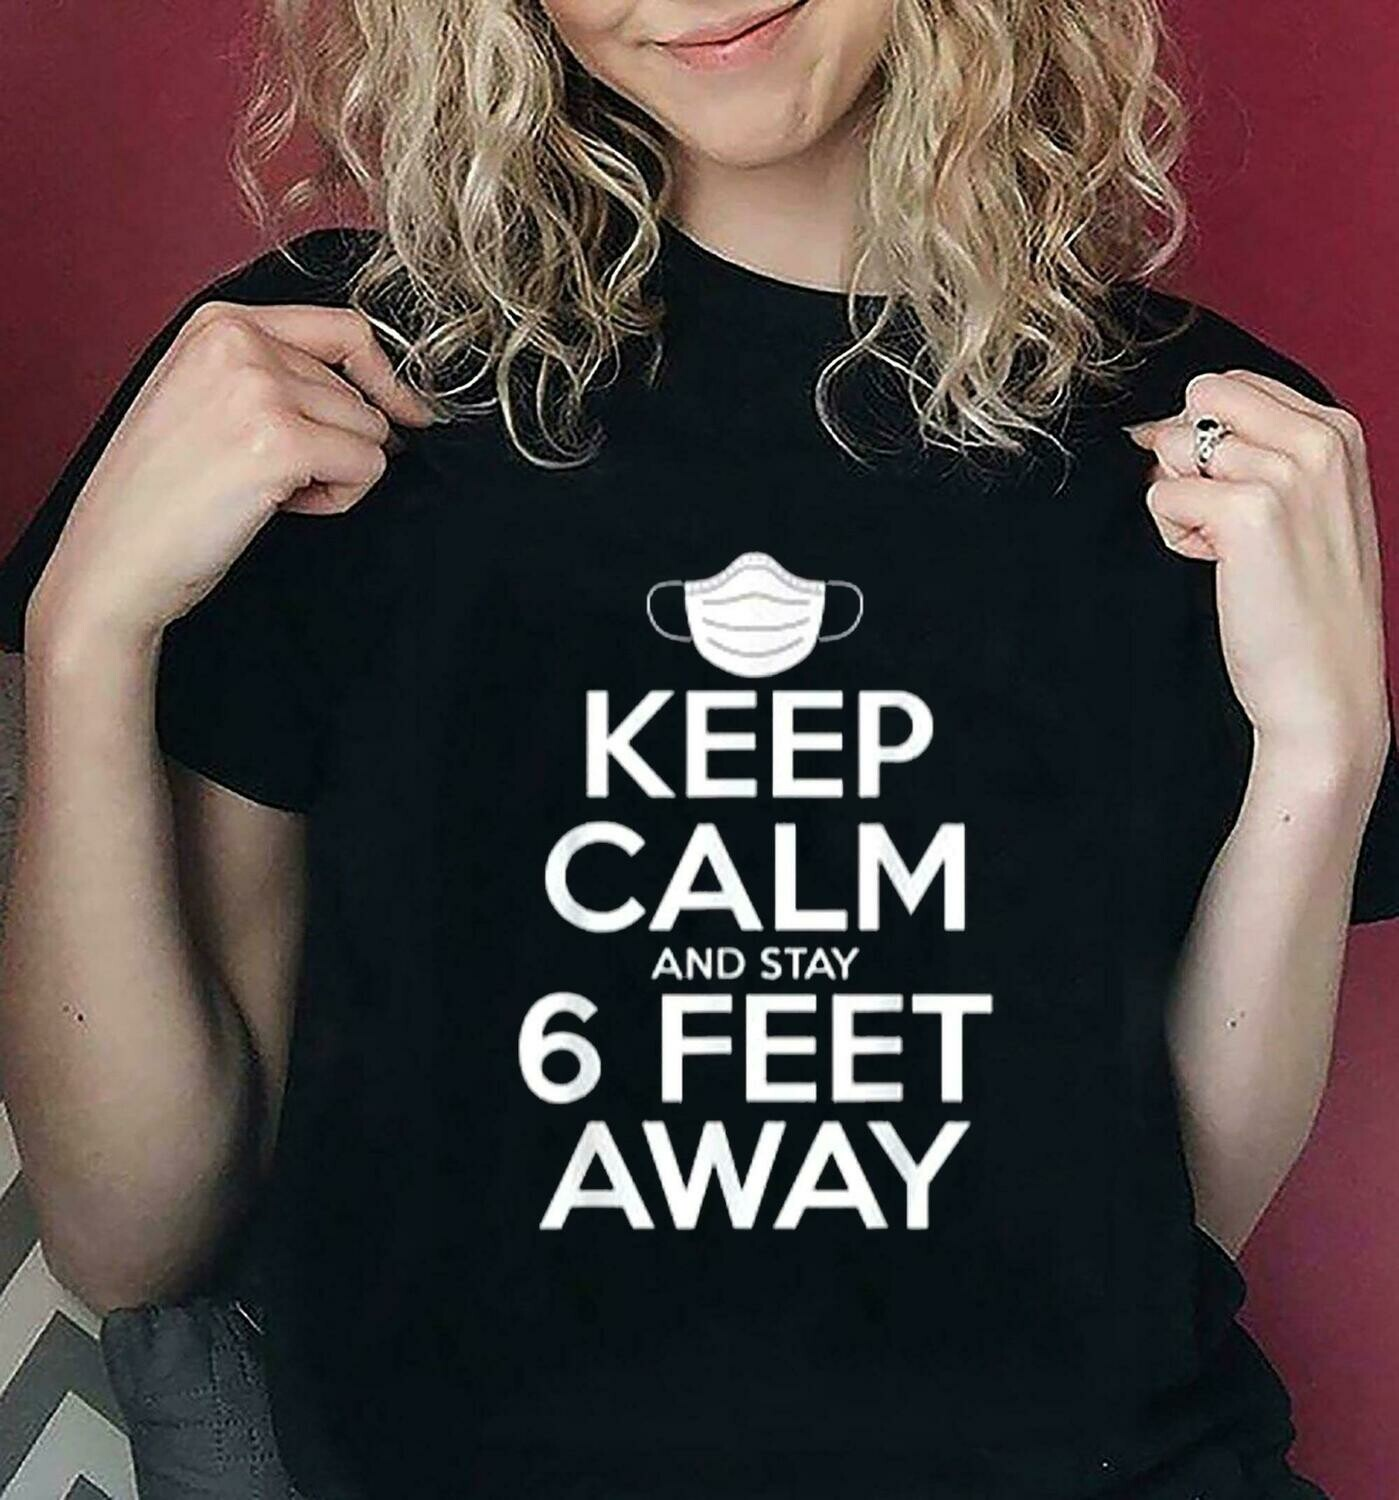 Keep Calm And Stay 6 Feet Away Svg Cut File T-Shirt Digital Download Clipart Cricut Silhouette  Motivational Sign Social Distancing svg